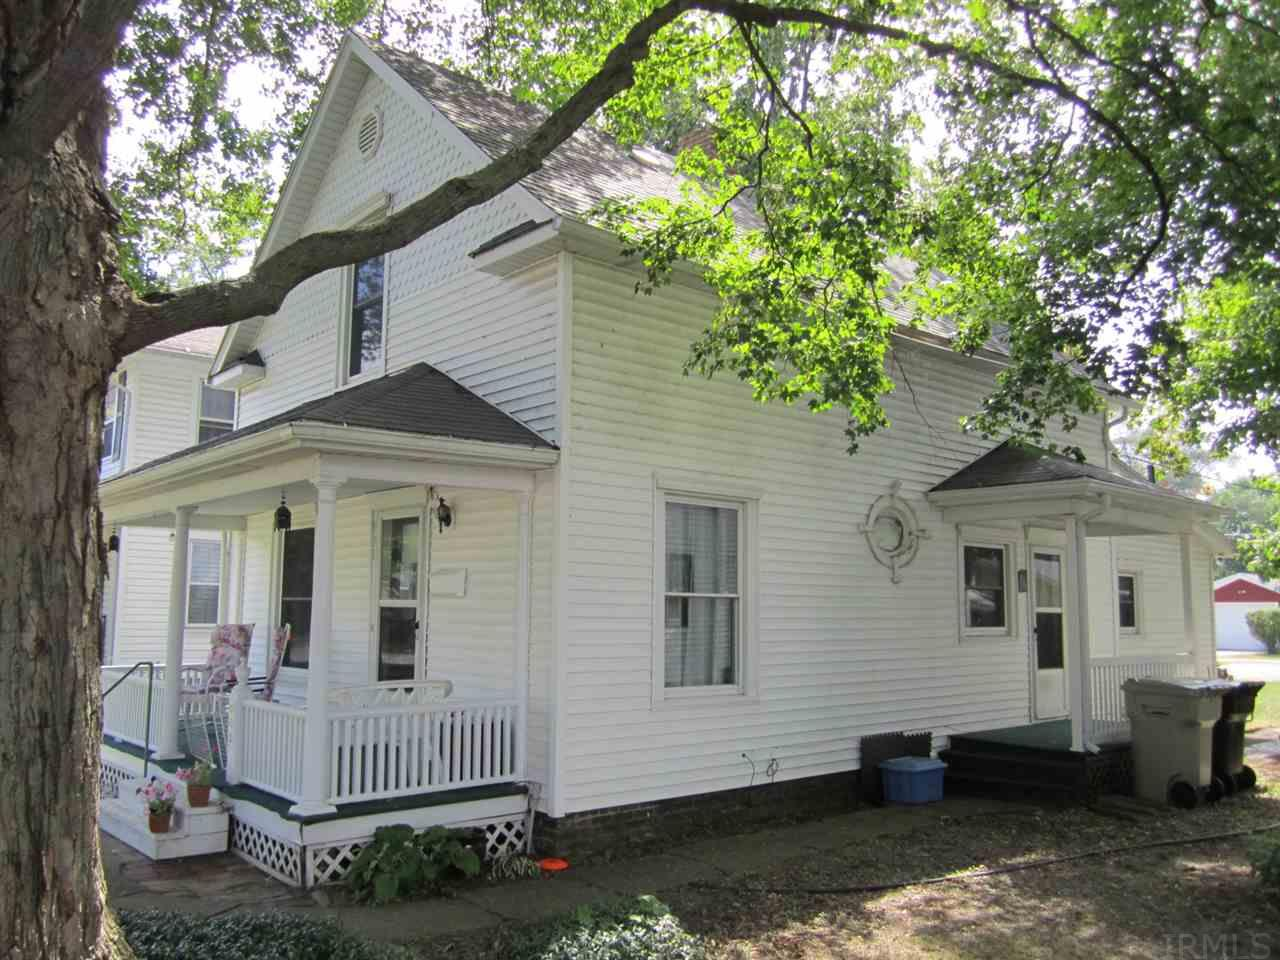 931 S 36th, South Bend, IN 46615